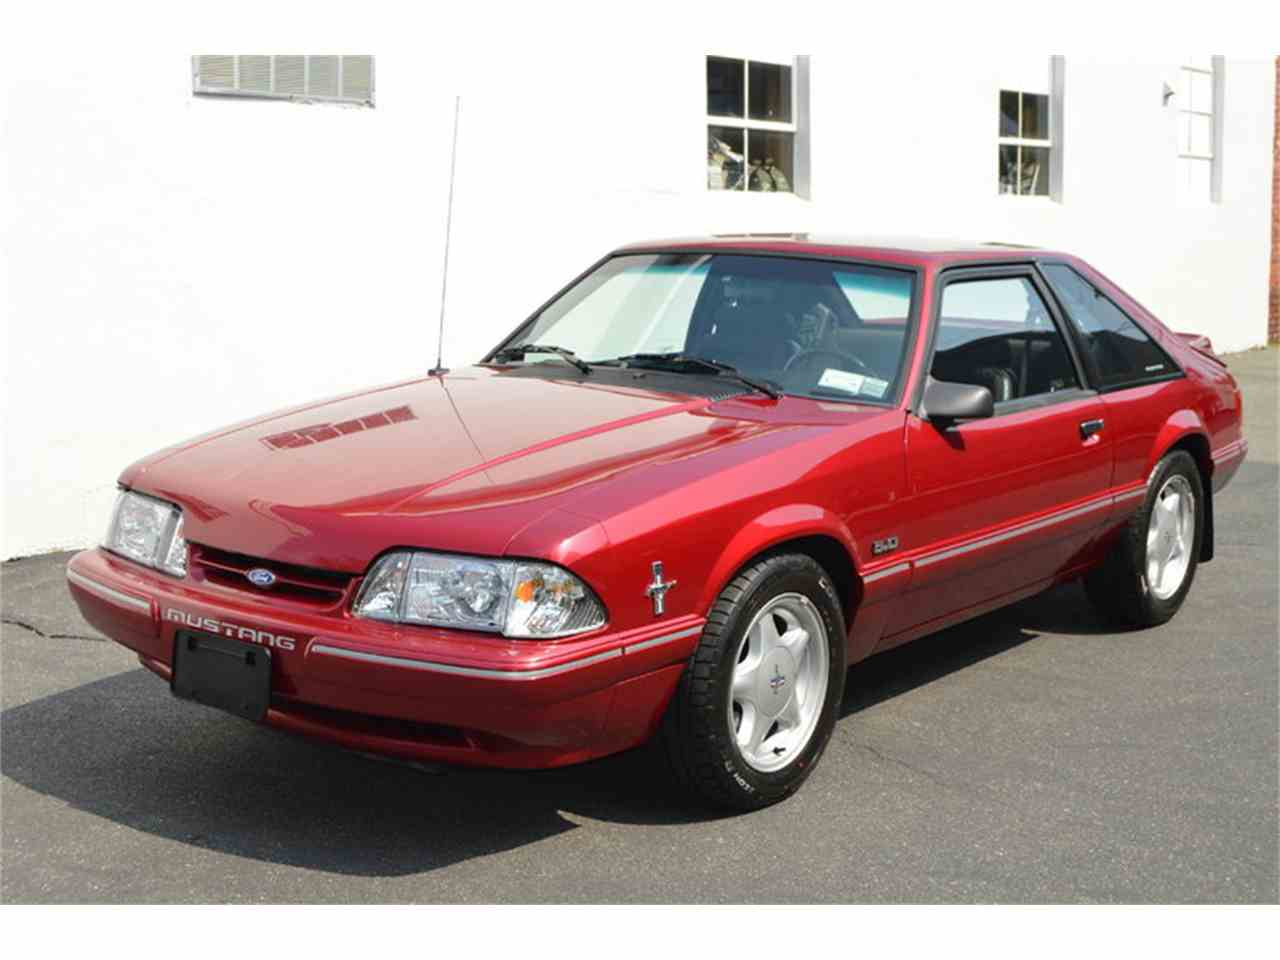 Large Picture of '93 Ford Mustang located in Springfield Massachusetts - $8,990.00 - LTW9